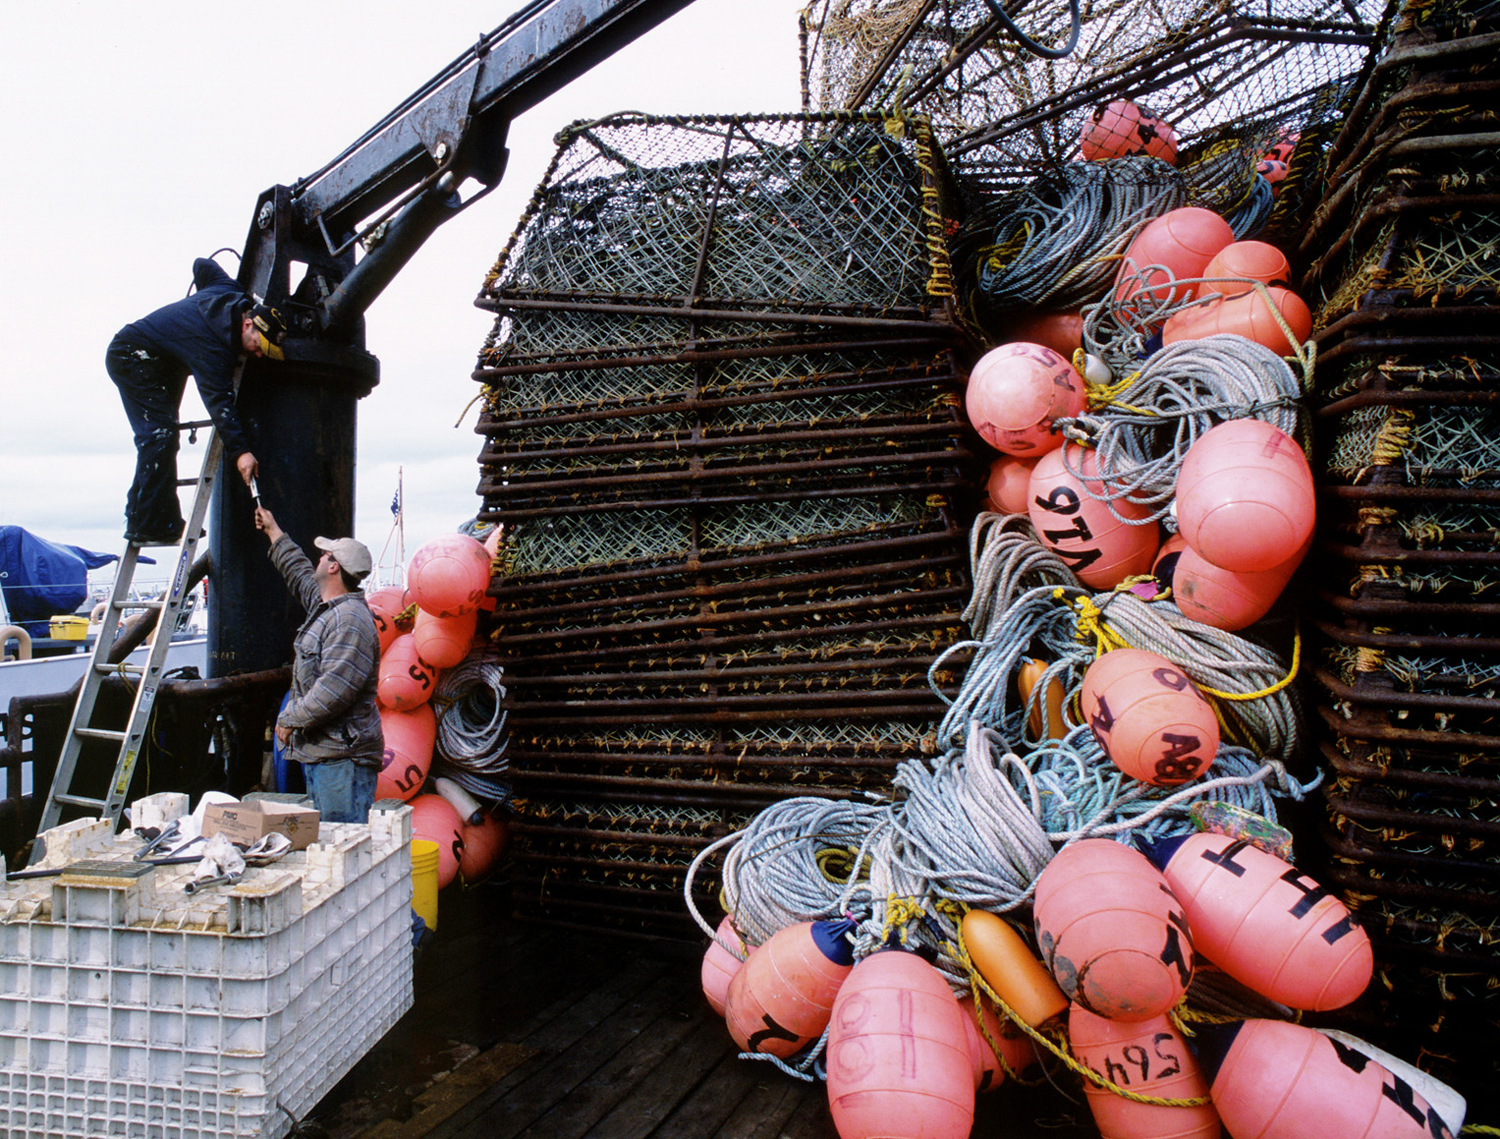 Thanks to Capitol Hill's political snag, the Super Bowl of fishing seasons may be delayed or canceled, spawning global crustacean frustration, from wholesale markets and restaurants touting their superior shellfish to the world's most crucial red king crab consumers – Japanese.